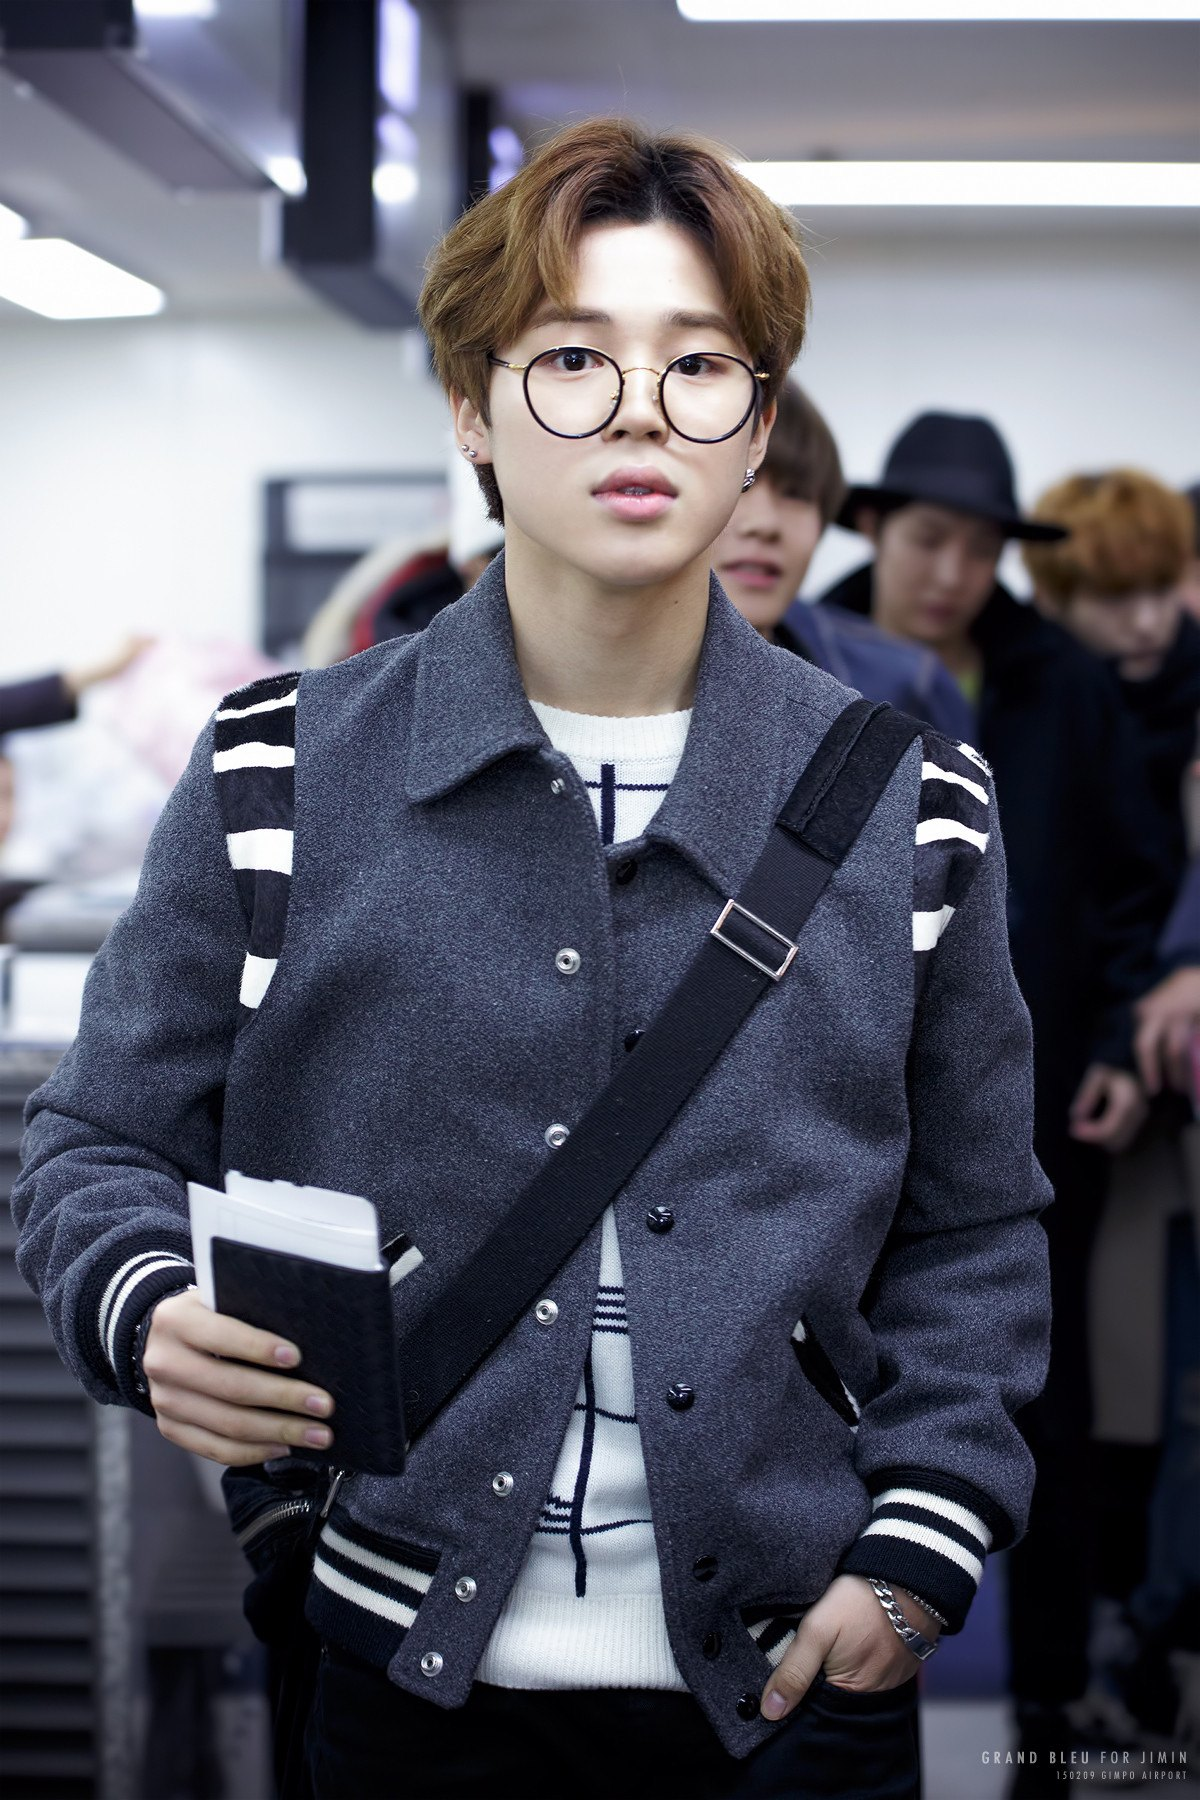 BTS's Jimin pulls of the trend wearing large round frames as he shows off his amazing airport fashion.